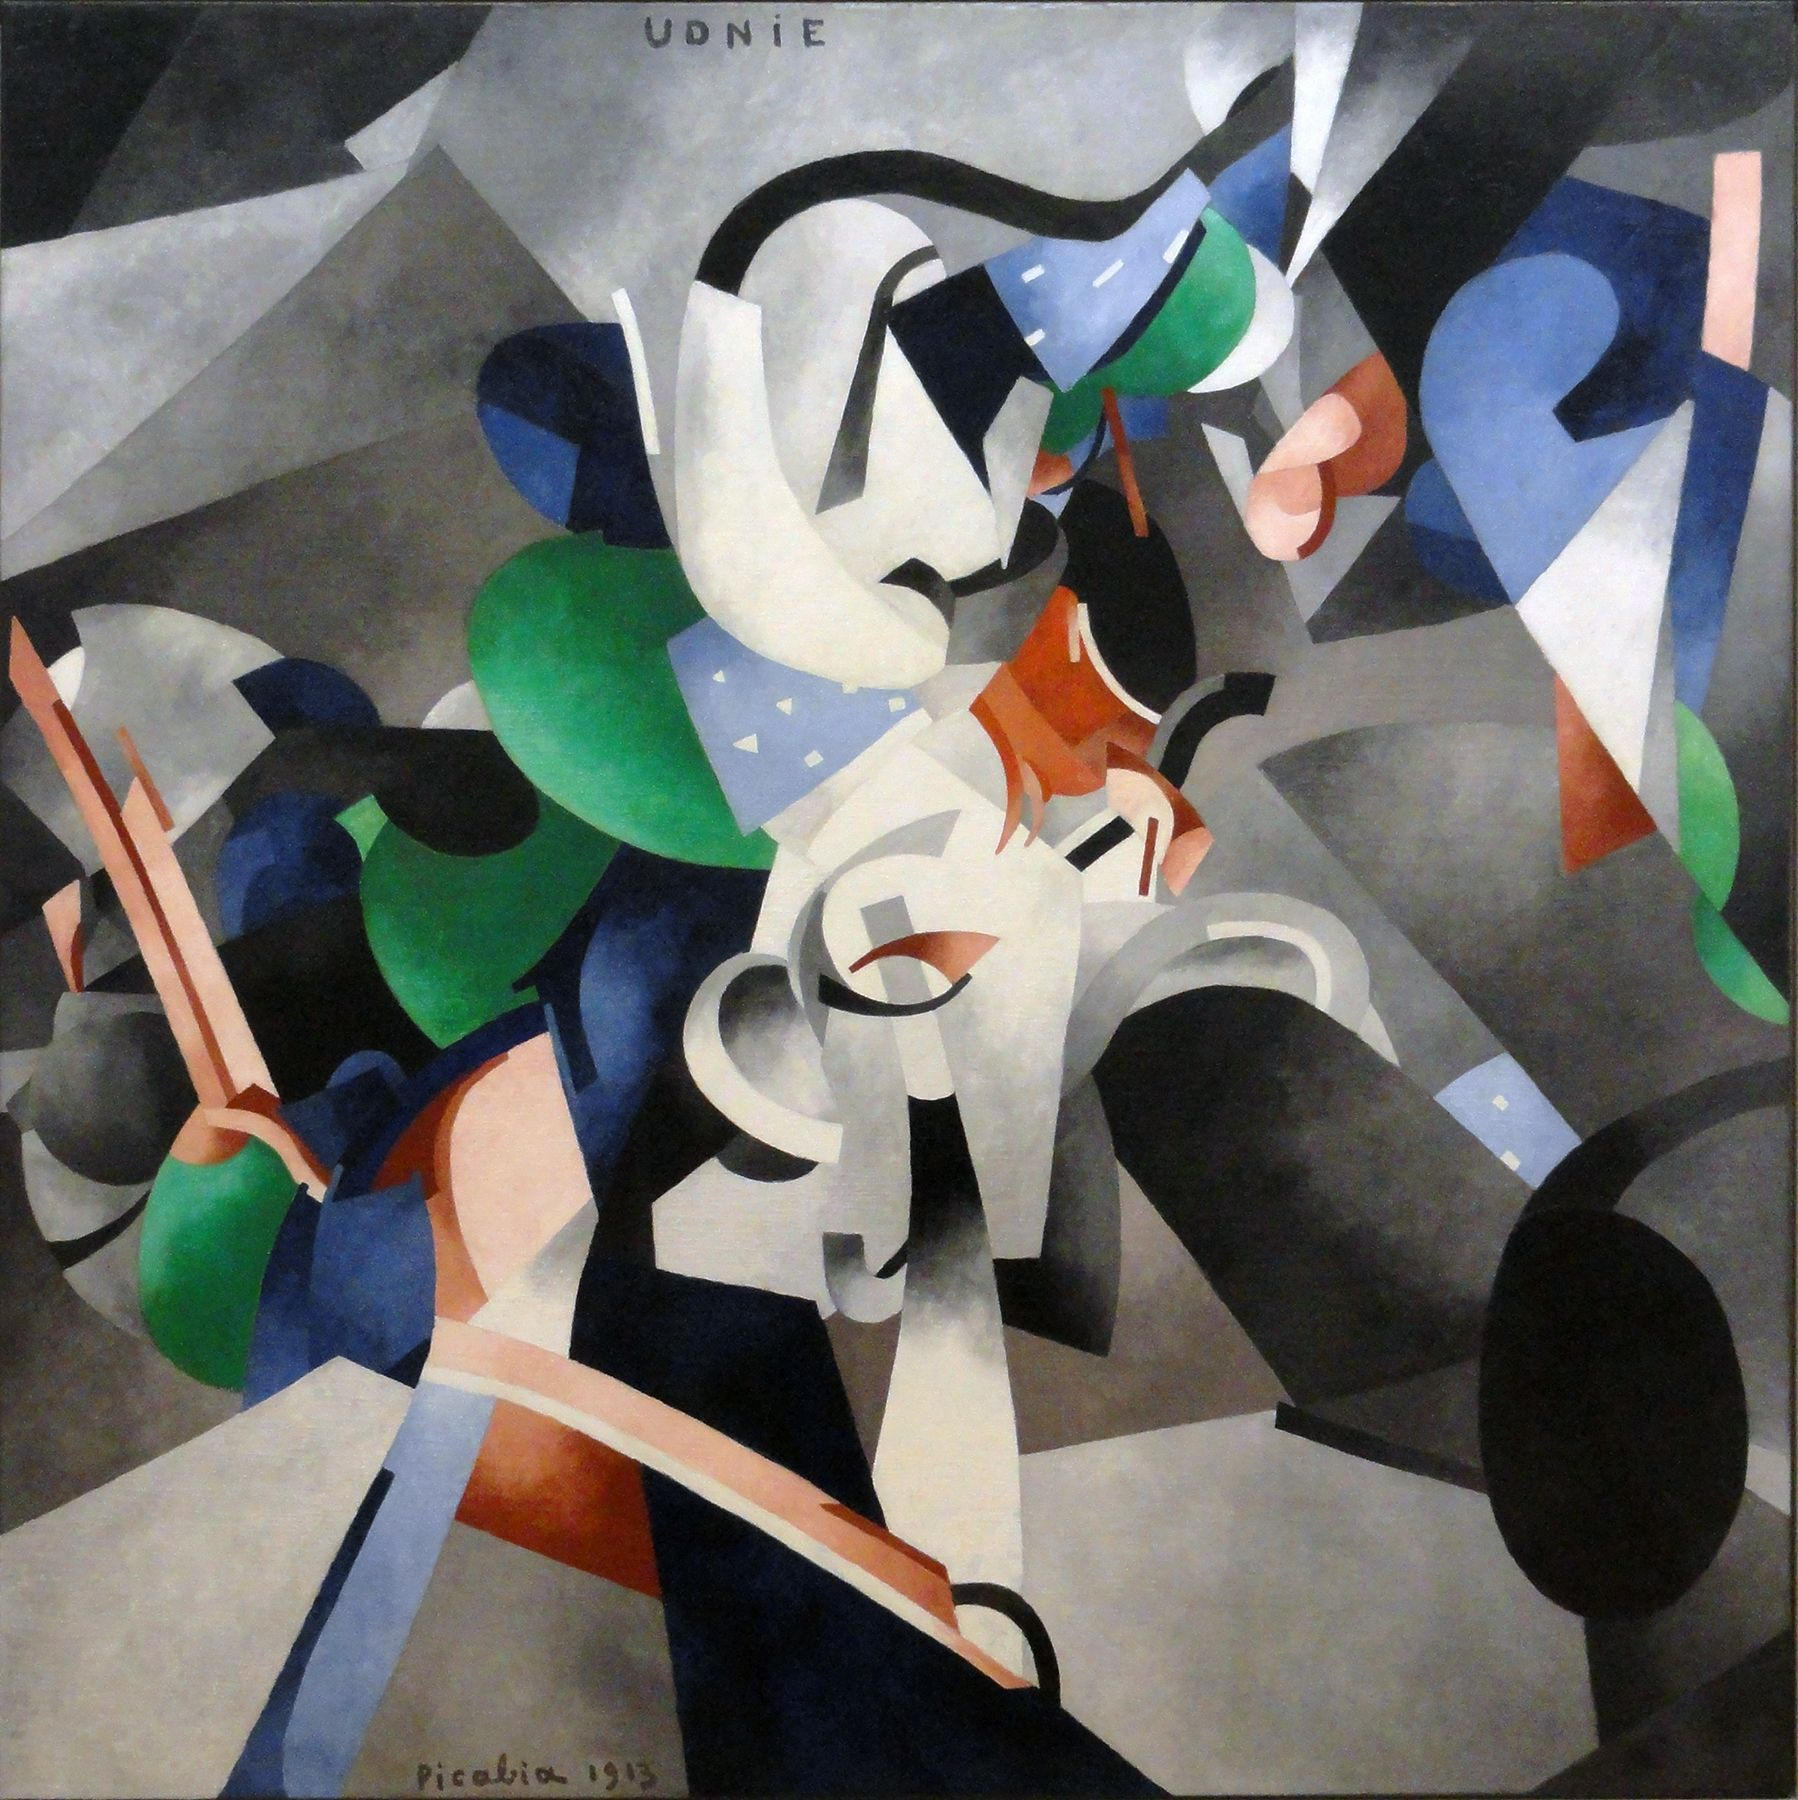 Francis Picabia 1913 Udnie Young American Girl The Dance Oil